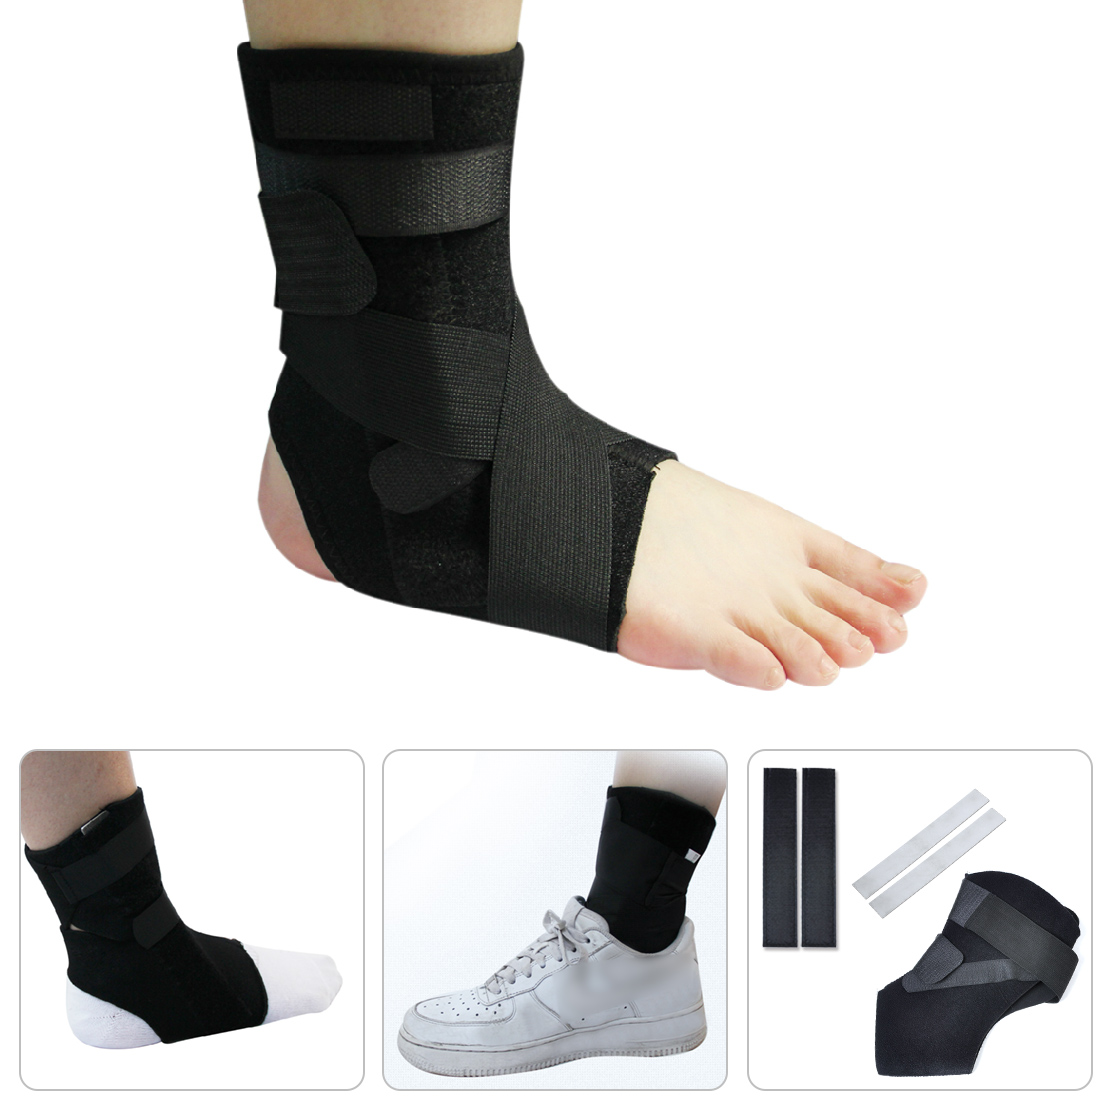 Best Ankle Support To Wear In Shoe